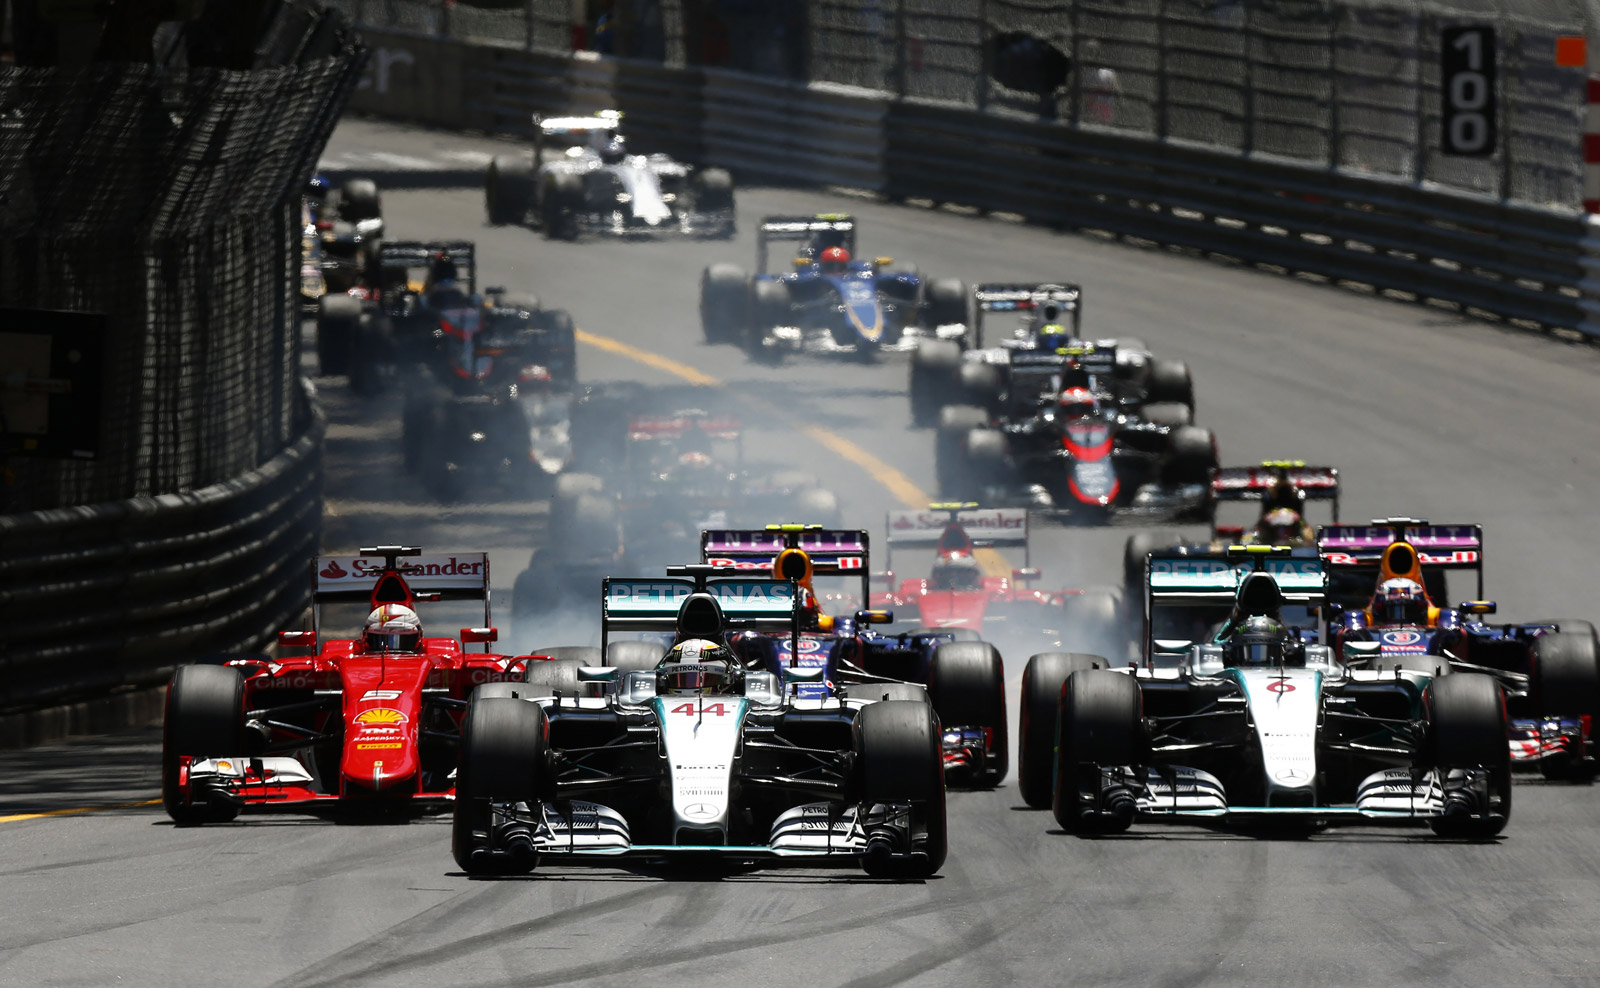 nico rosberg pulls surprise victory at 2015 formula one monaco grand prix. Black Bedroom Furniture Sets. Home Design Ideas